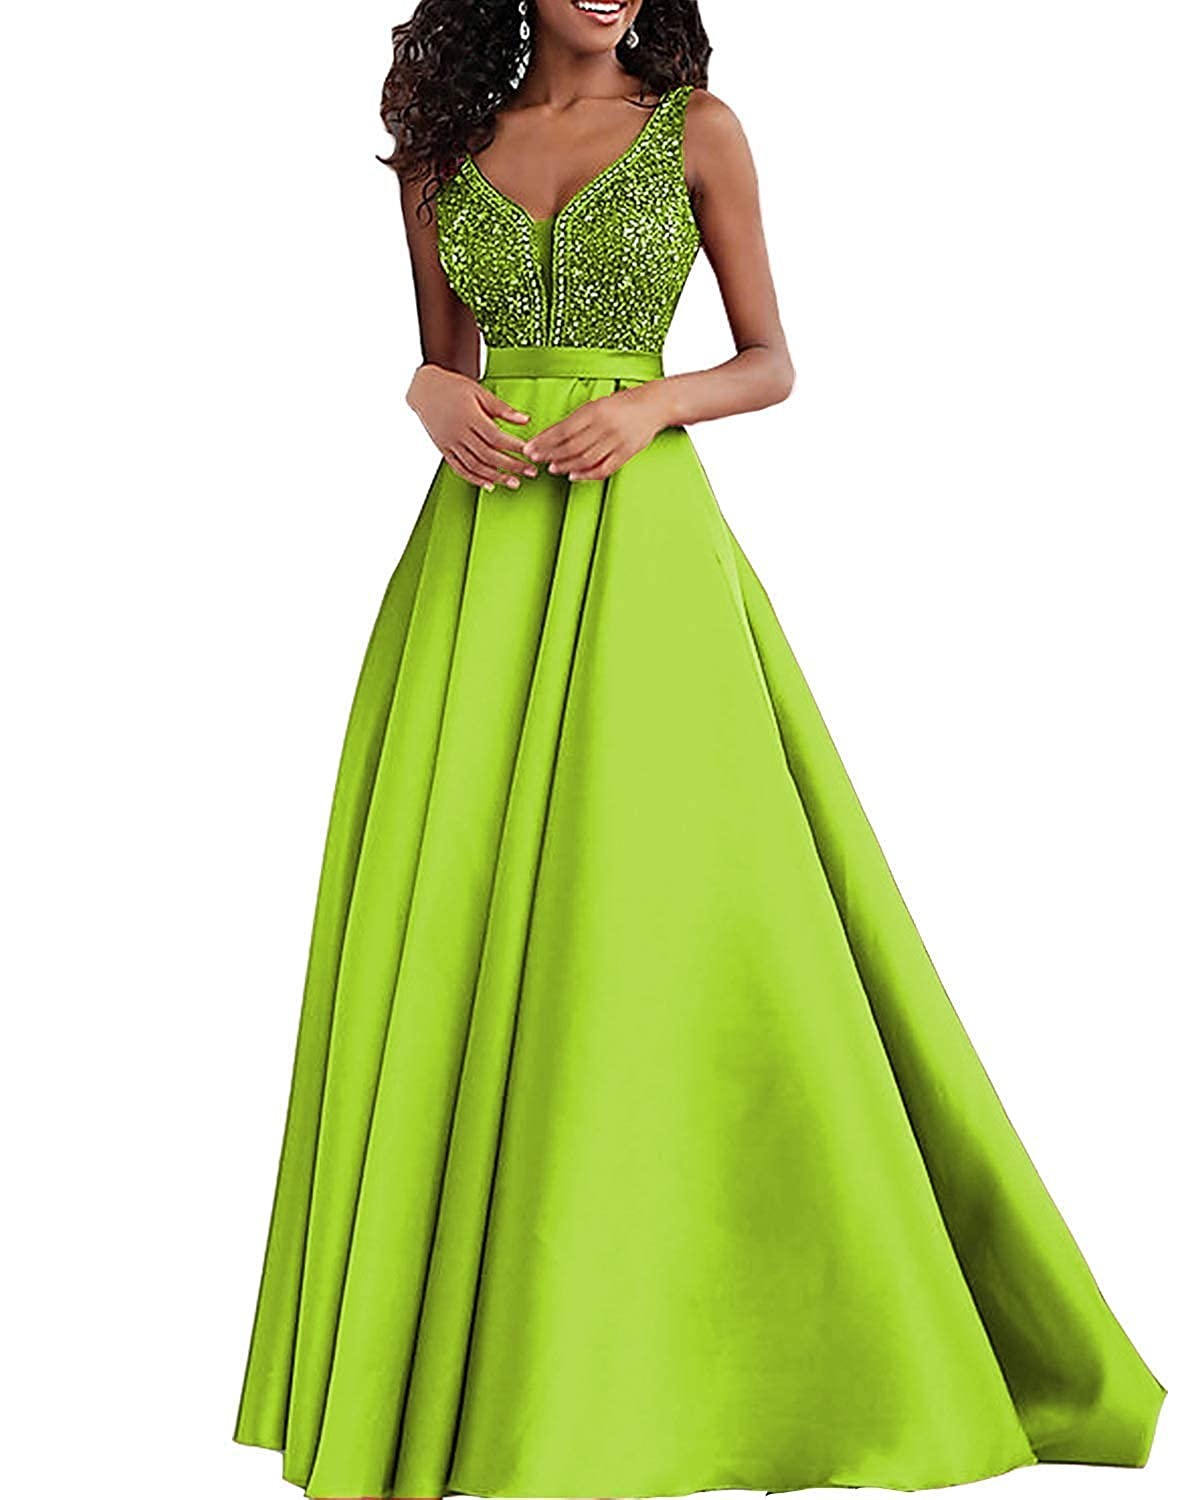 Lime Sulidi Womens Double V Neck Prom Dresses 2019 Long Beaded Formal Evening Wedding Party GownsC148